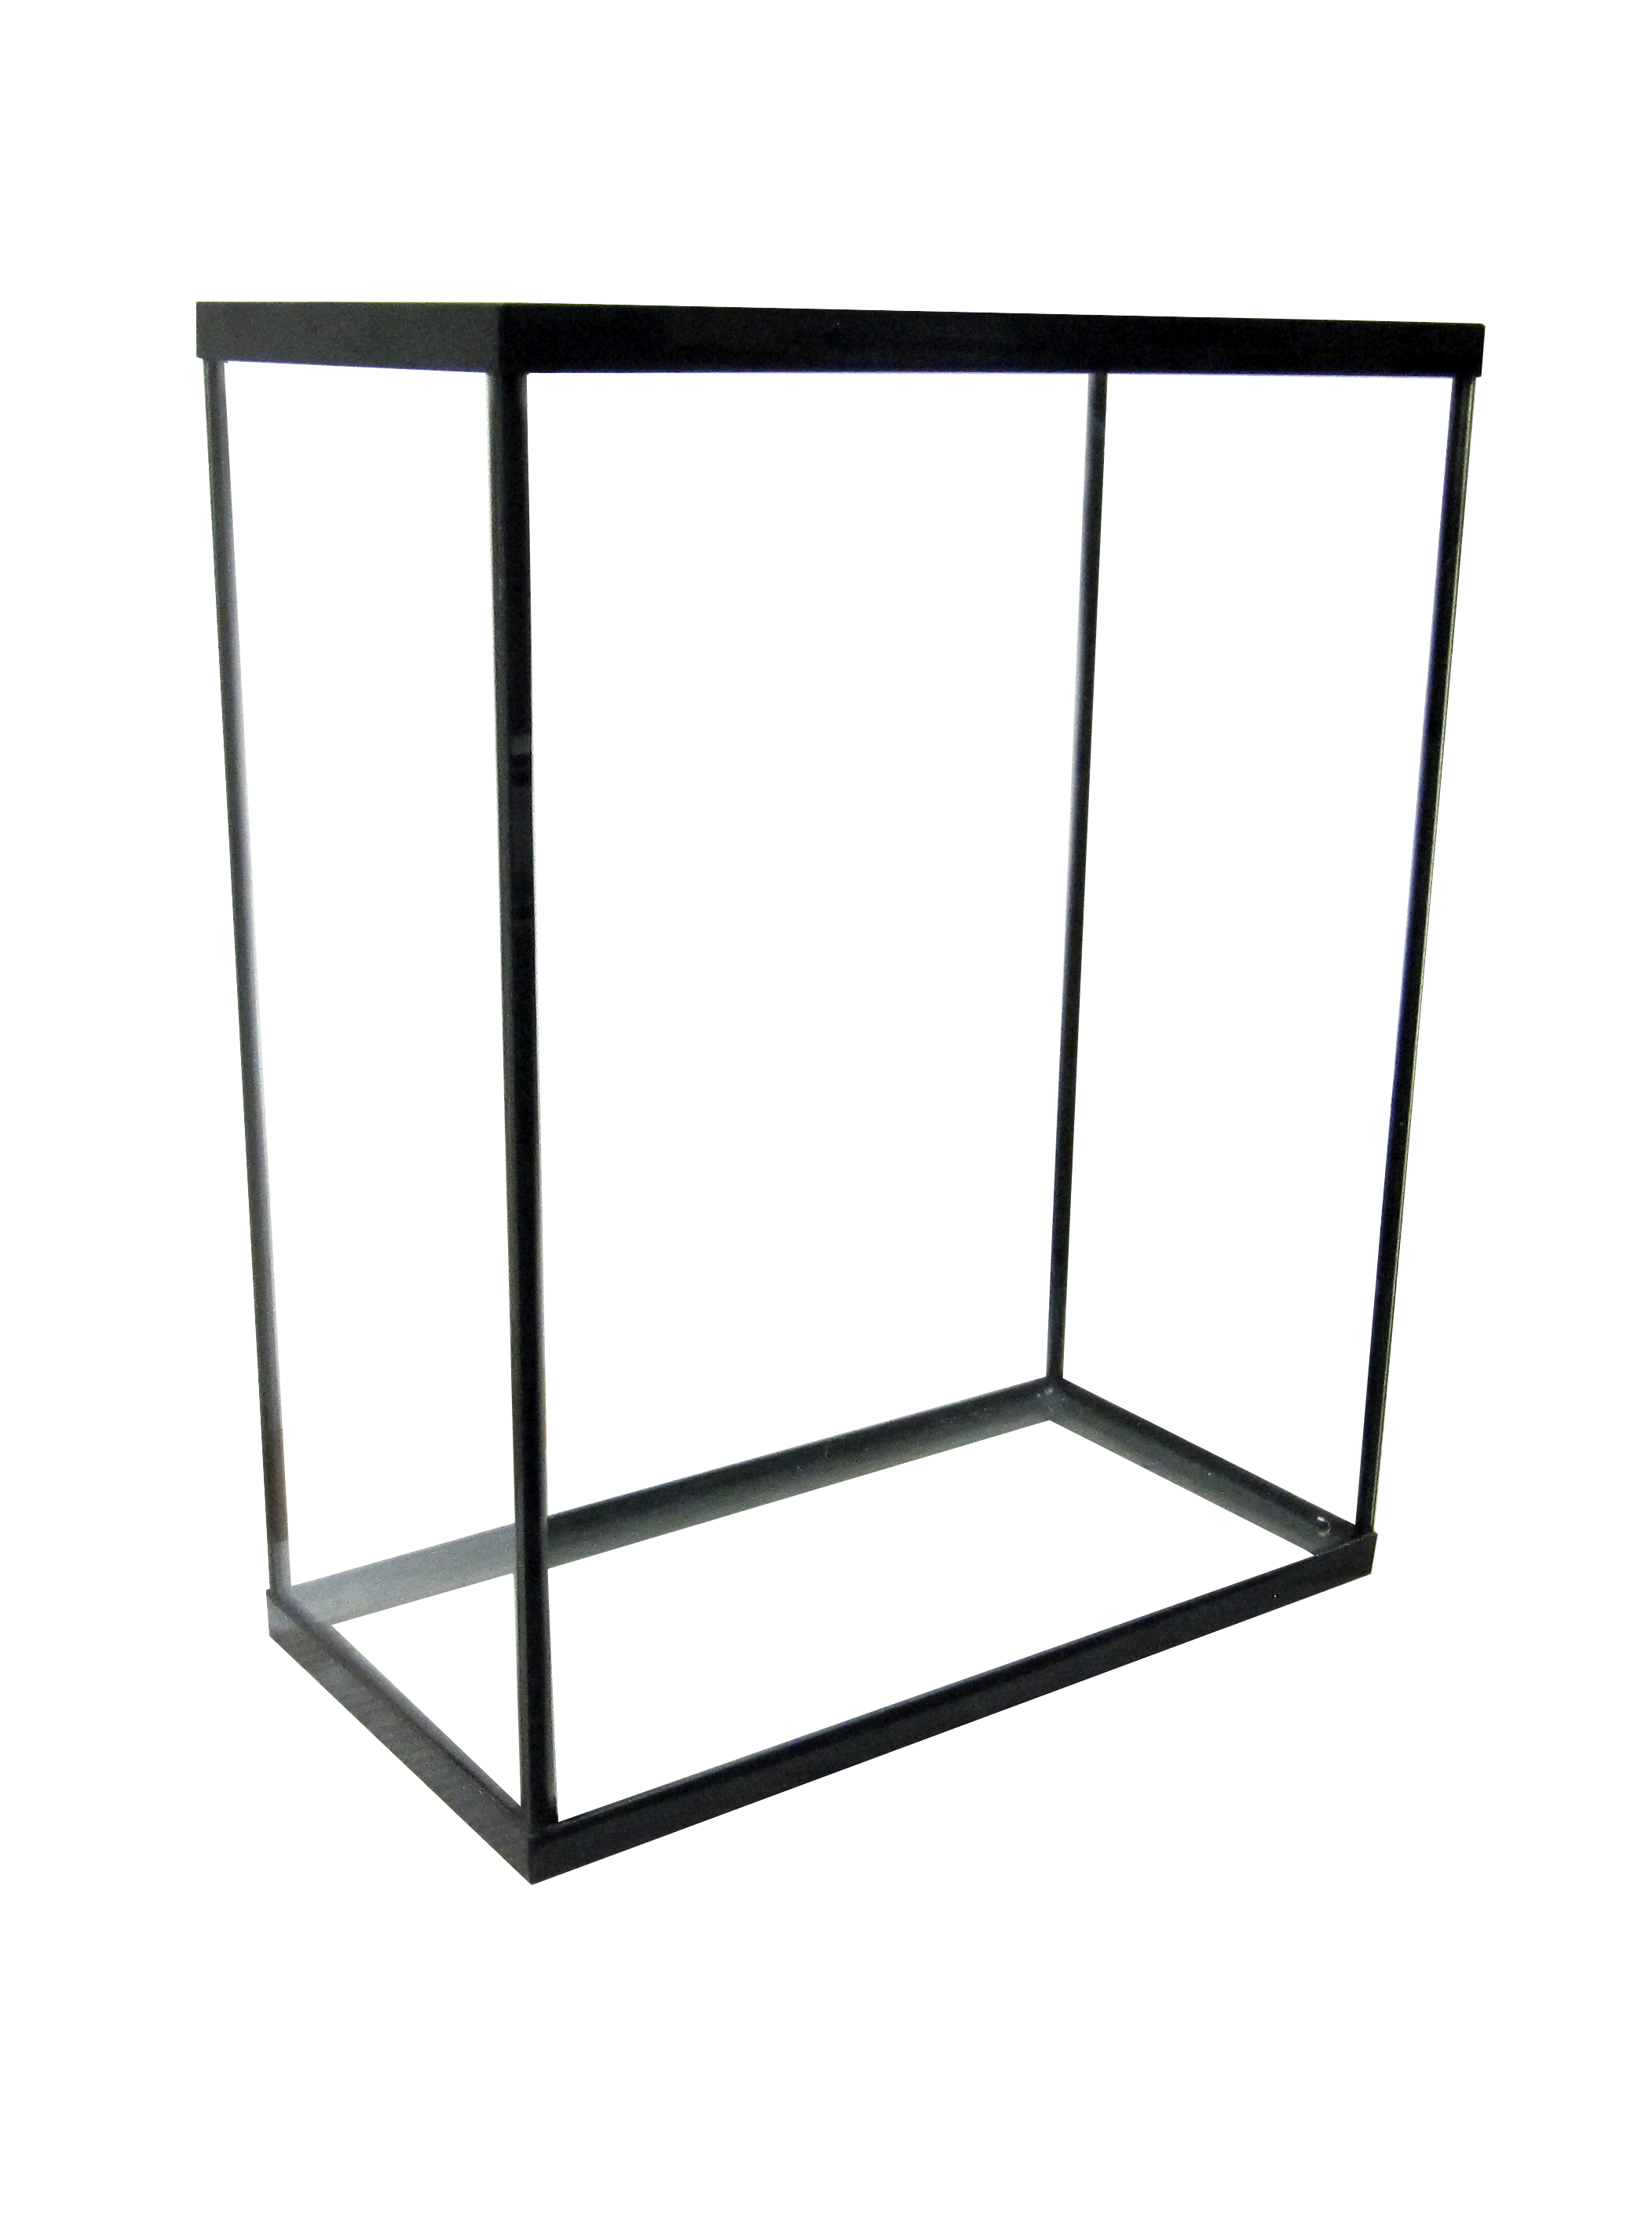 "20 X. High Aquarium - 20x10x24 ""  SKU#: AM11022  UPC#: 7-49729-11022-4  Product Dimension: 20.13""x10.25""x24.88""  Capacity: Approximately 20 gallons  Weight: 23.10 lbs"